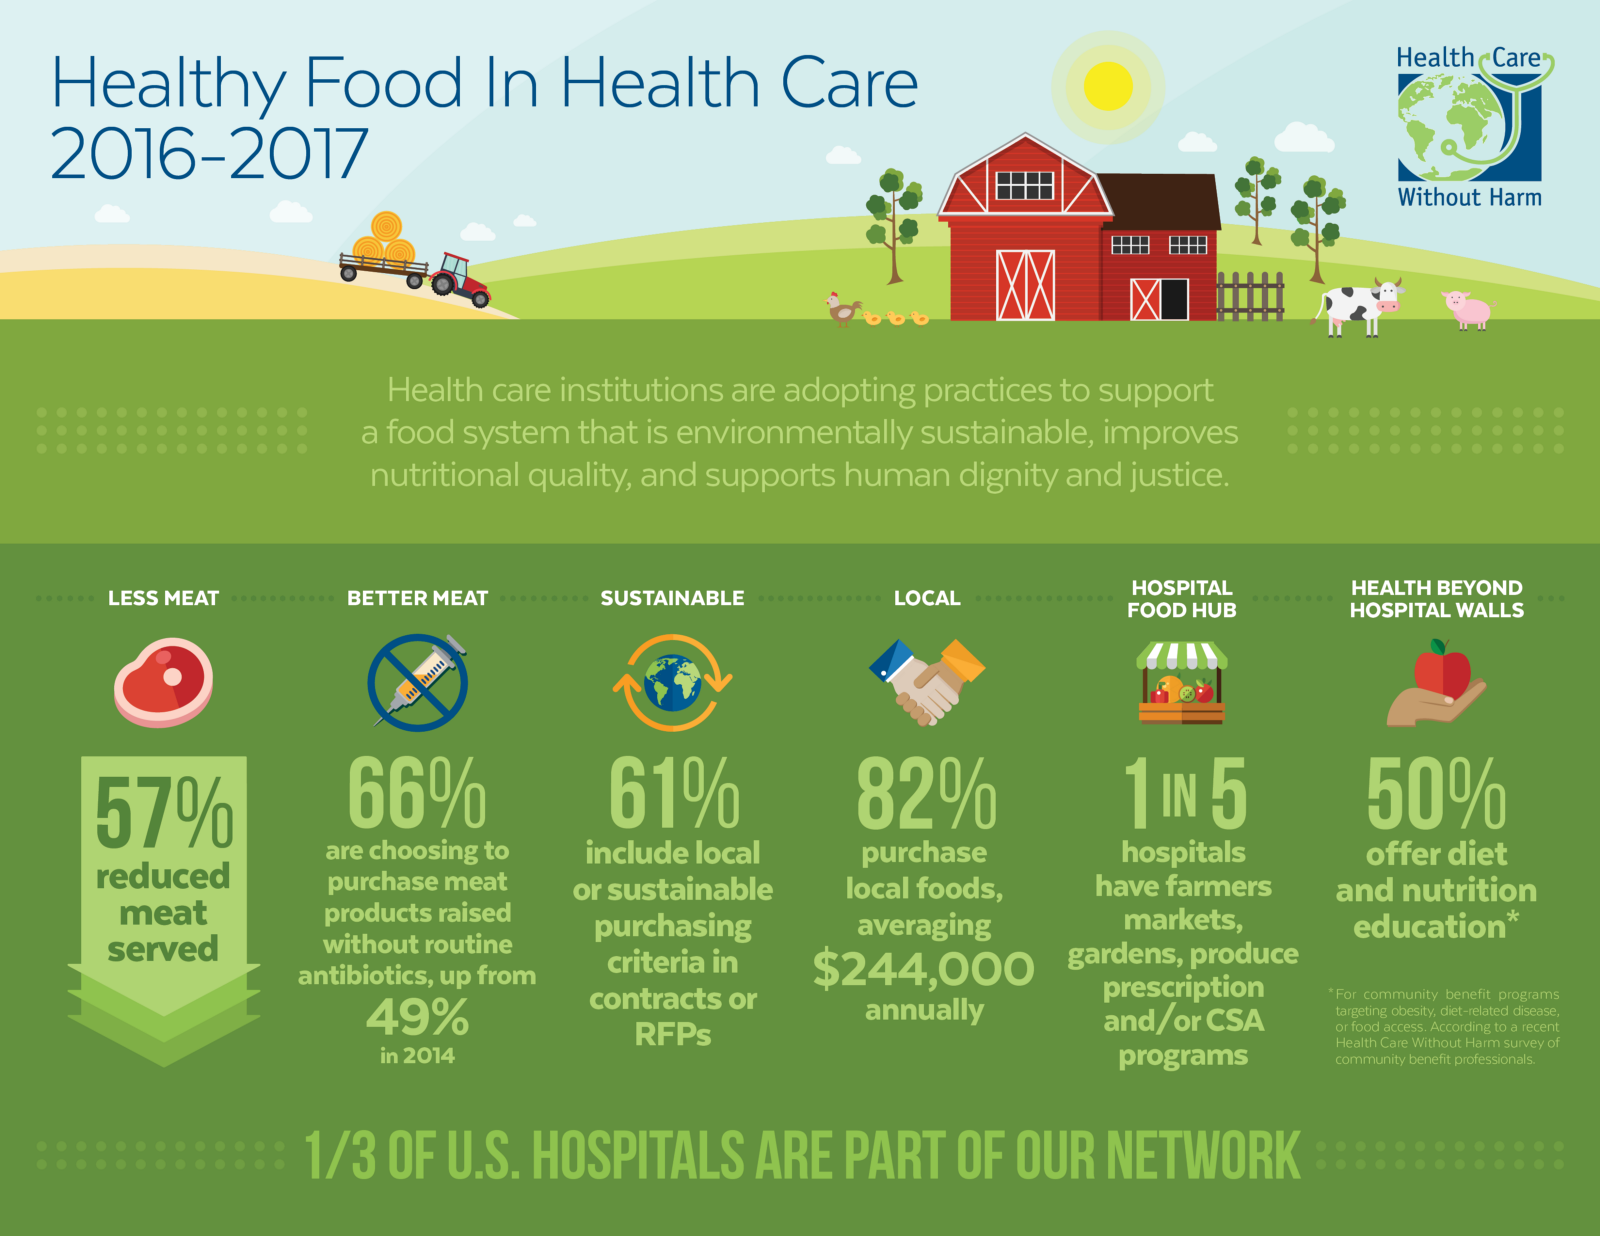 Source: Health Care Without Harm (https://noharm-uscanada.org/issues/us-canada/healthy-food-health-care)